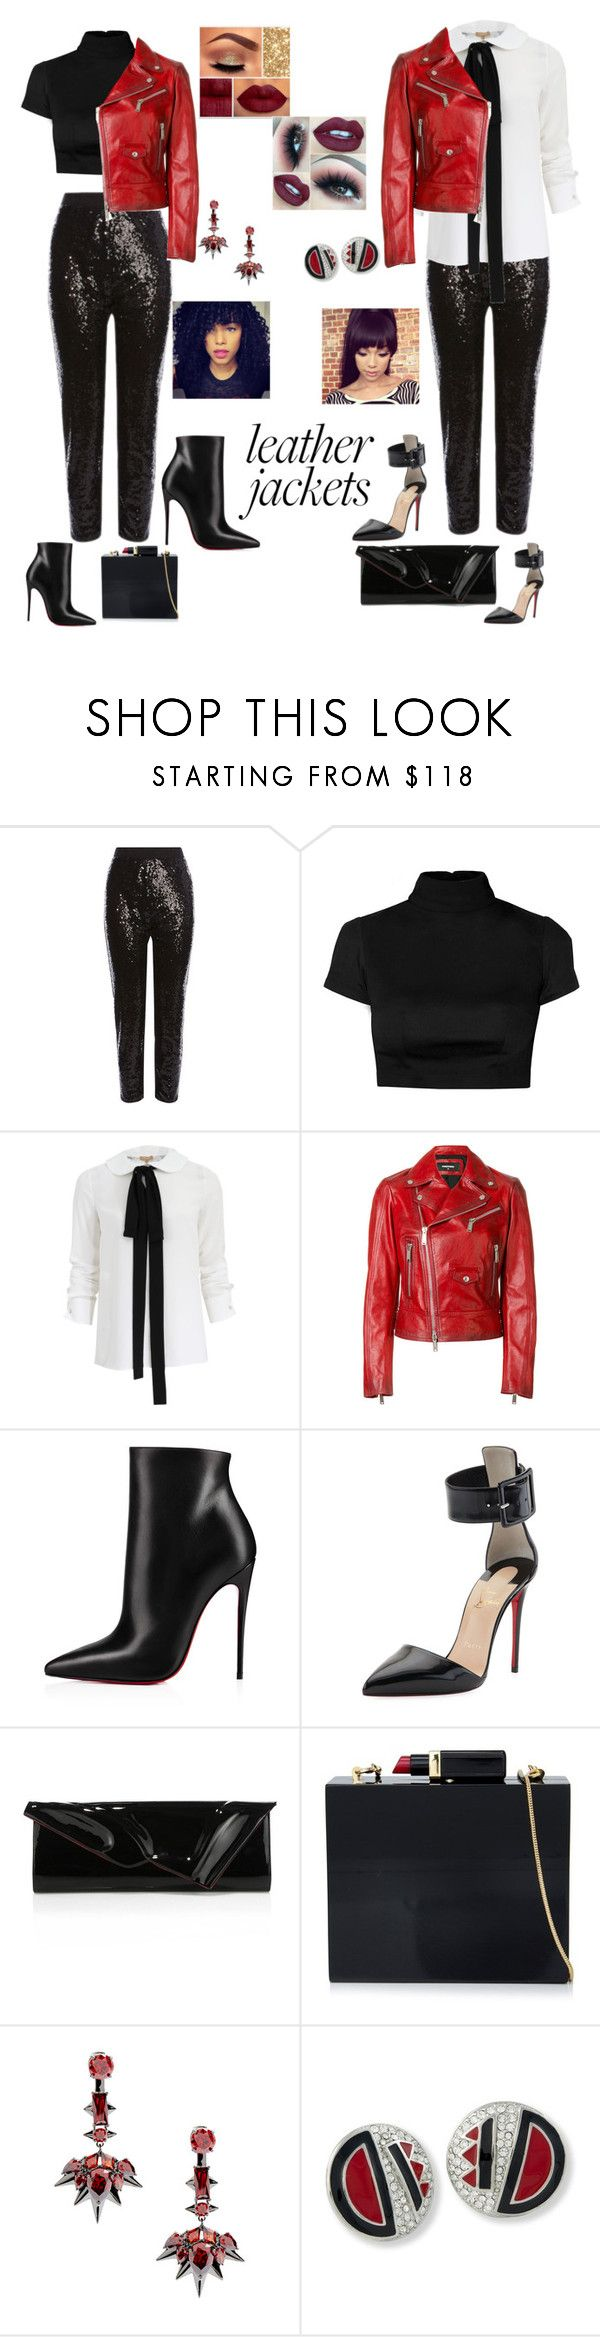 """""""Untitled #594"""" by ericap61720 ❤ liked on Polyvore featuring Michael Kors, Dsquared2, Christian Louboutin, Lulu Guinness, Noir Jewelry and Kenneth Jay Lane"""